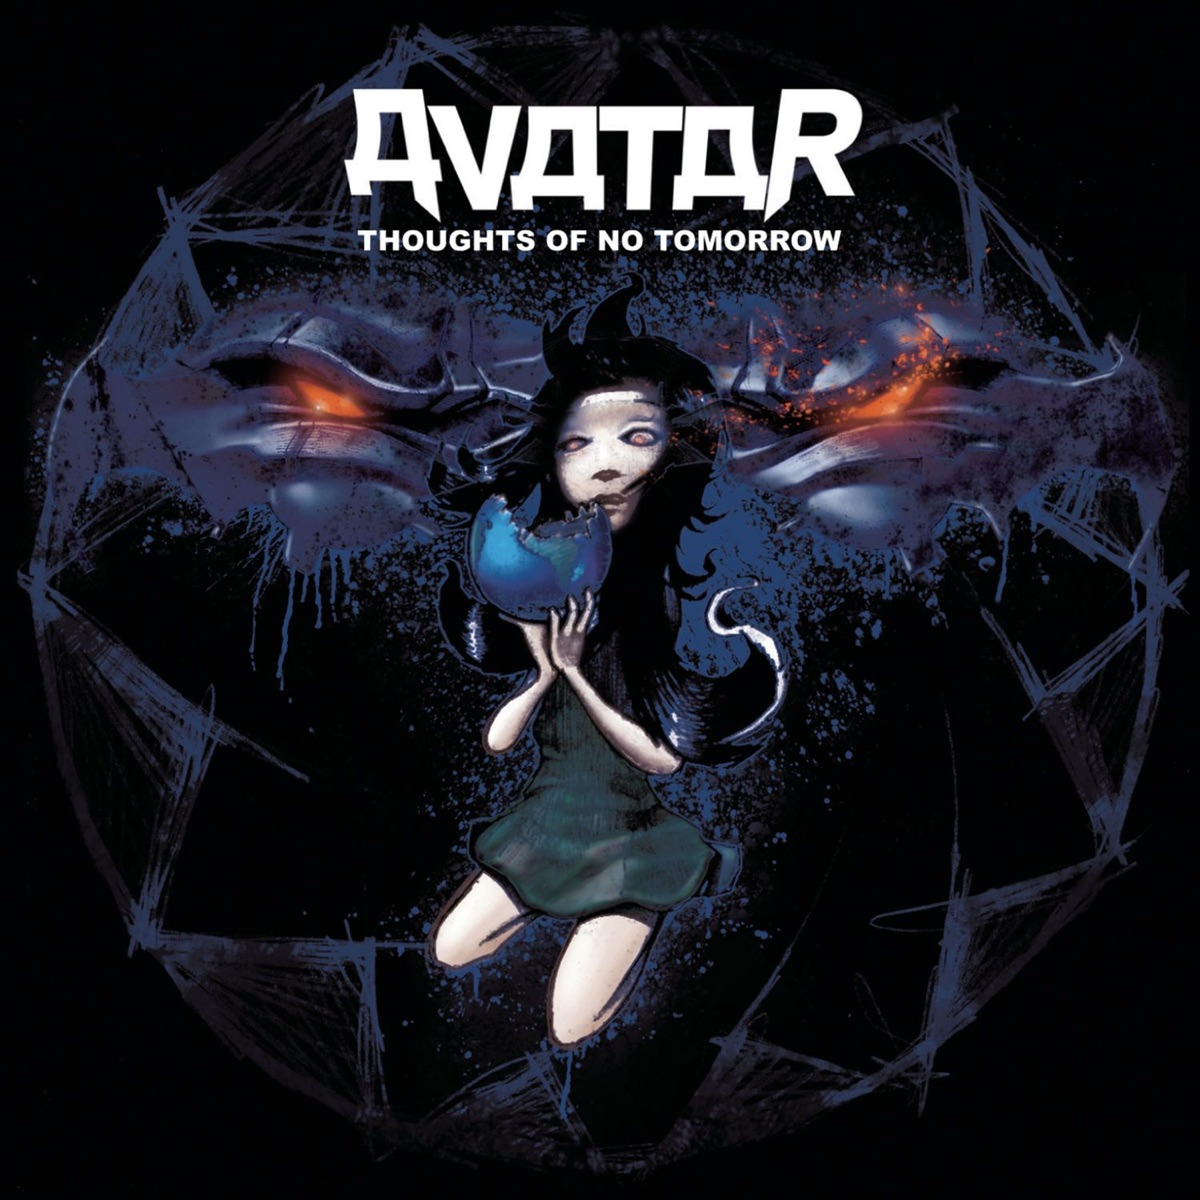 Thoughts of No Tomorrow Avatar CD cover